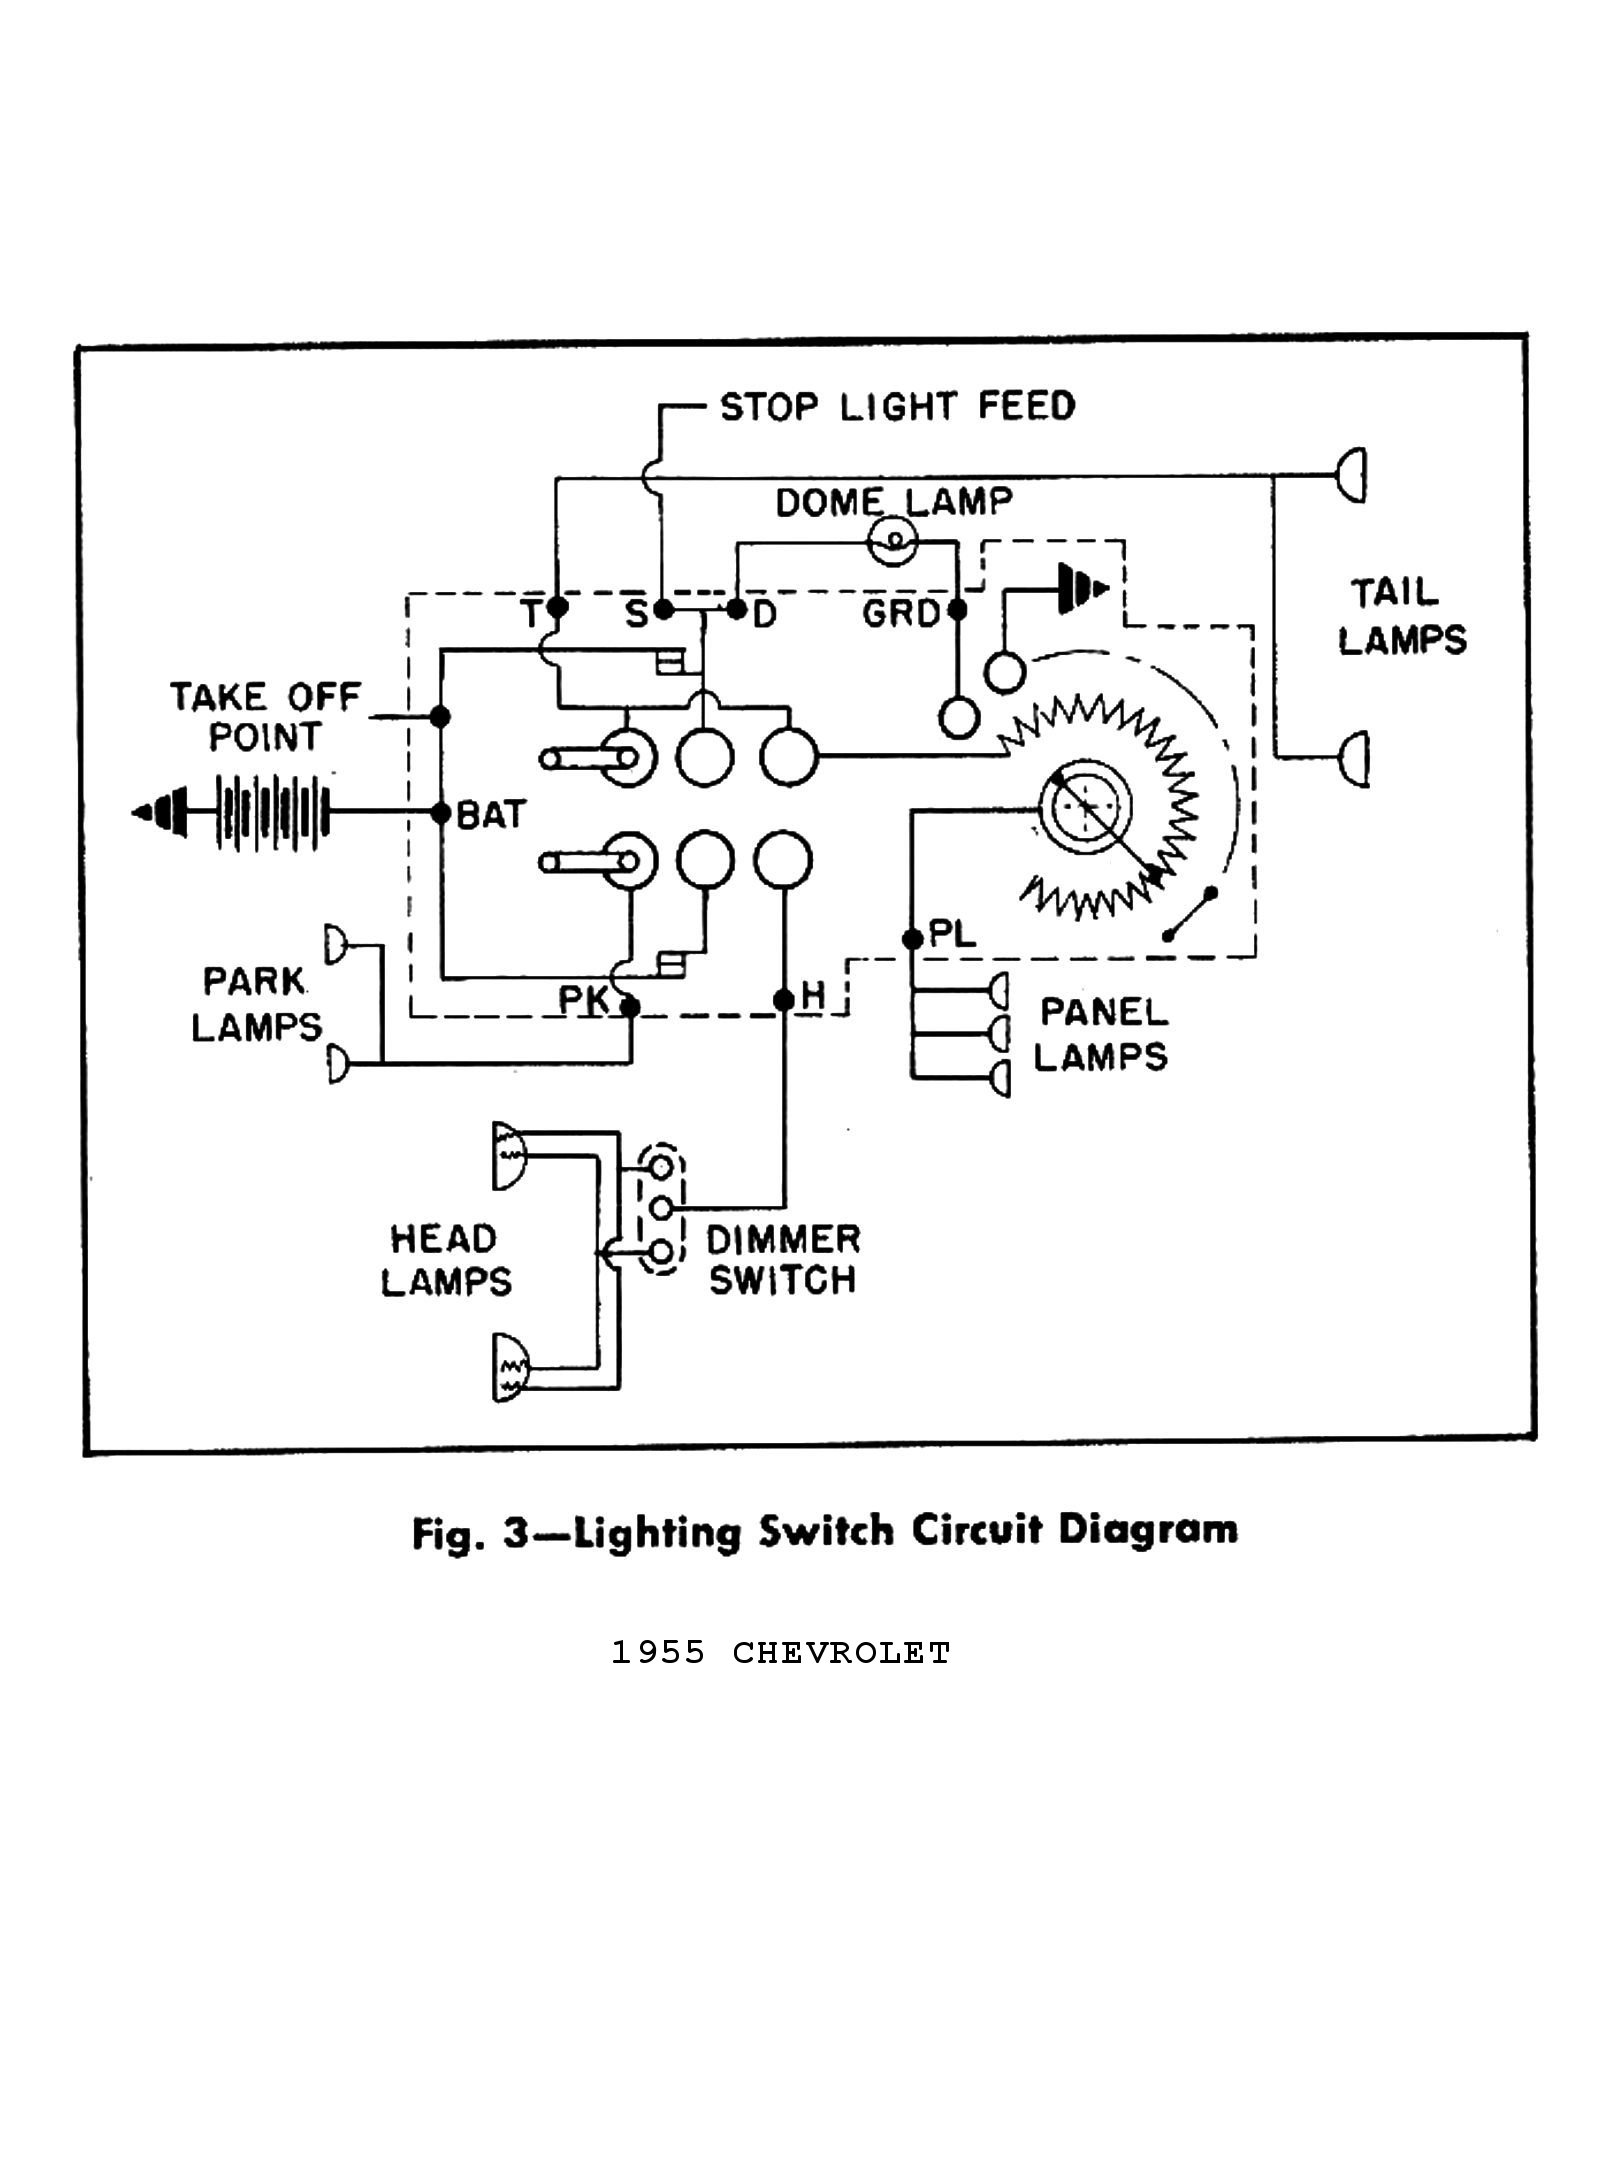 hight resolution of 1956 gm column wiring wiring diagram1976 chevrolet steering column wiring wiring diagramsford to gm column wiring